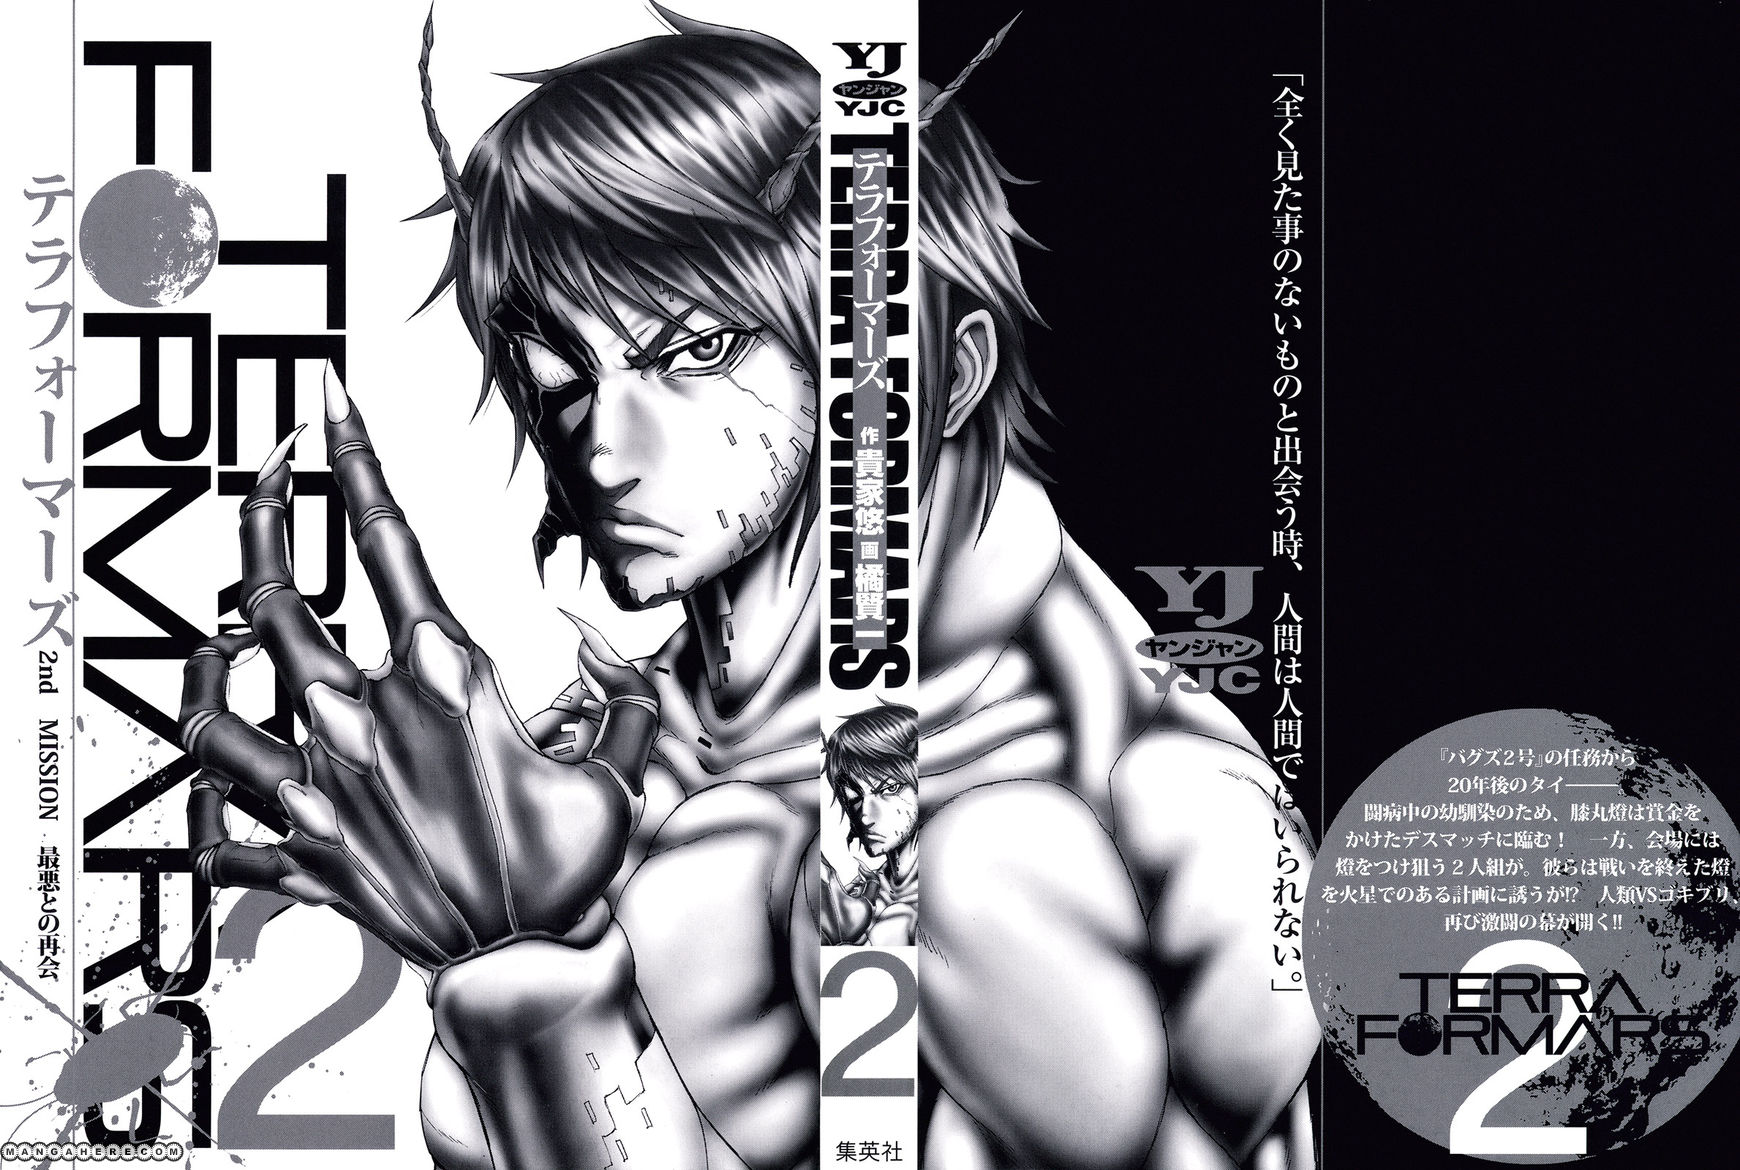 Terra Formars 7 Page 2